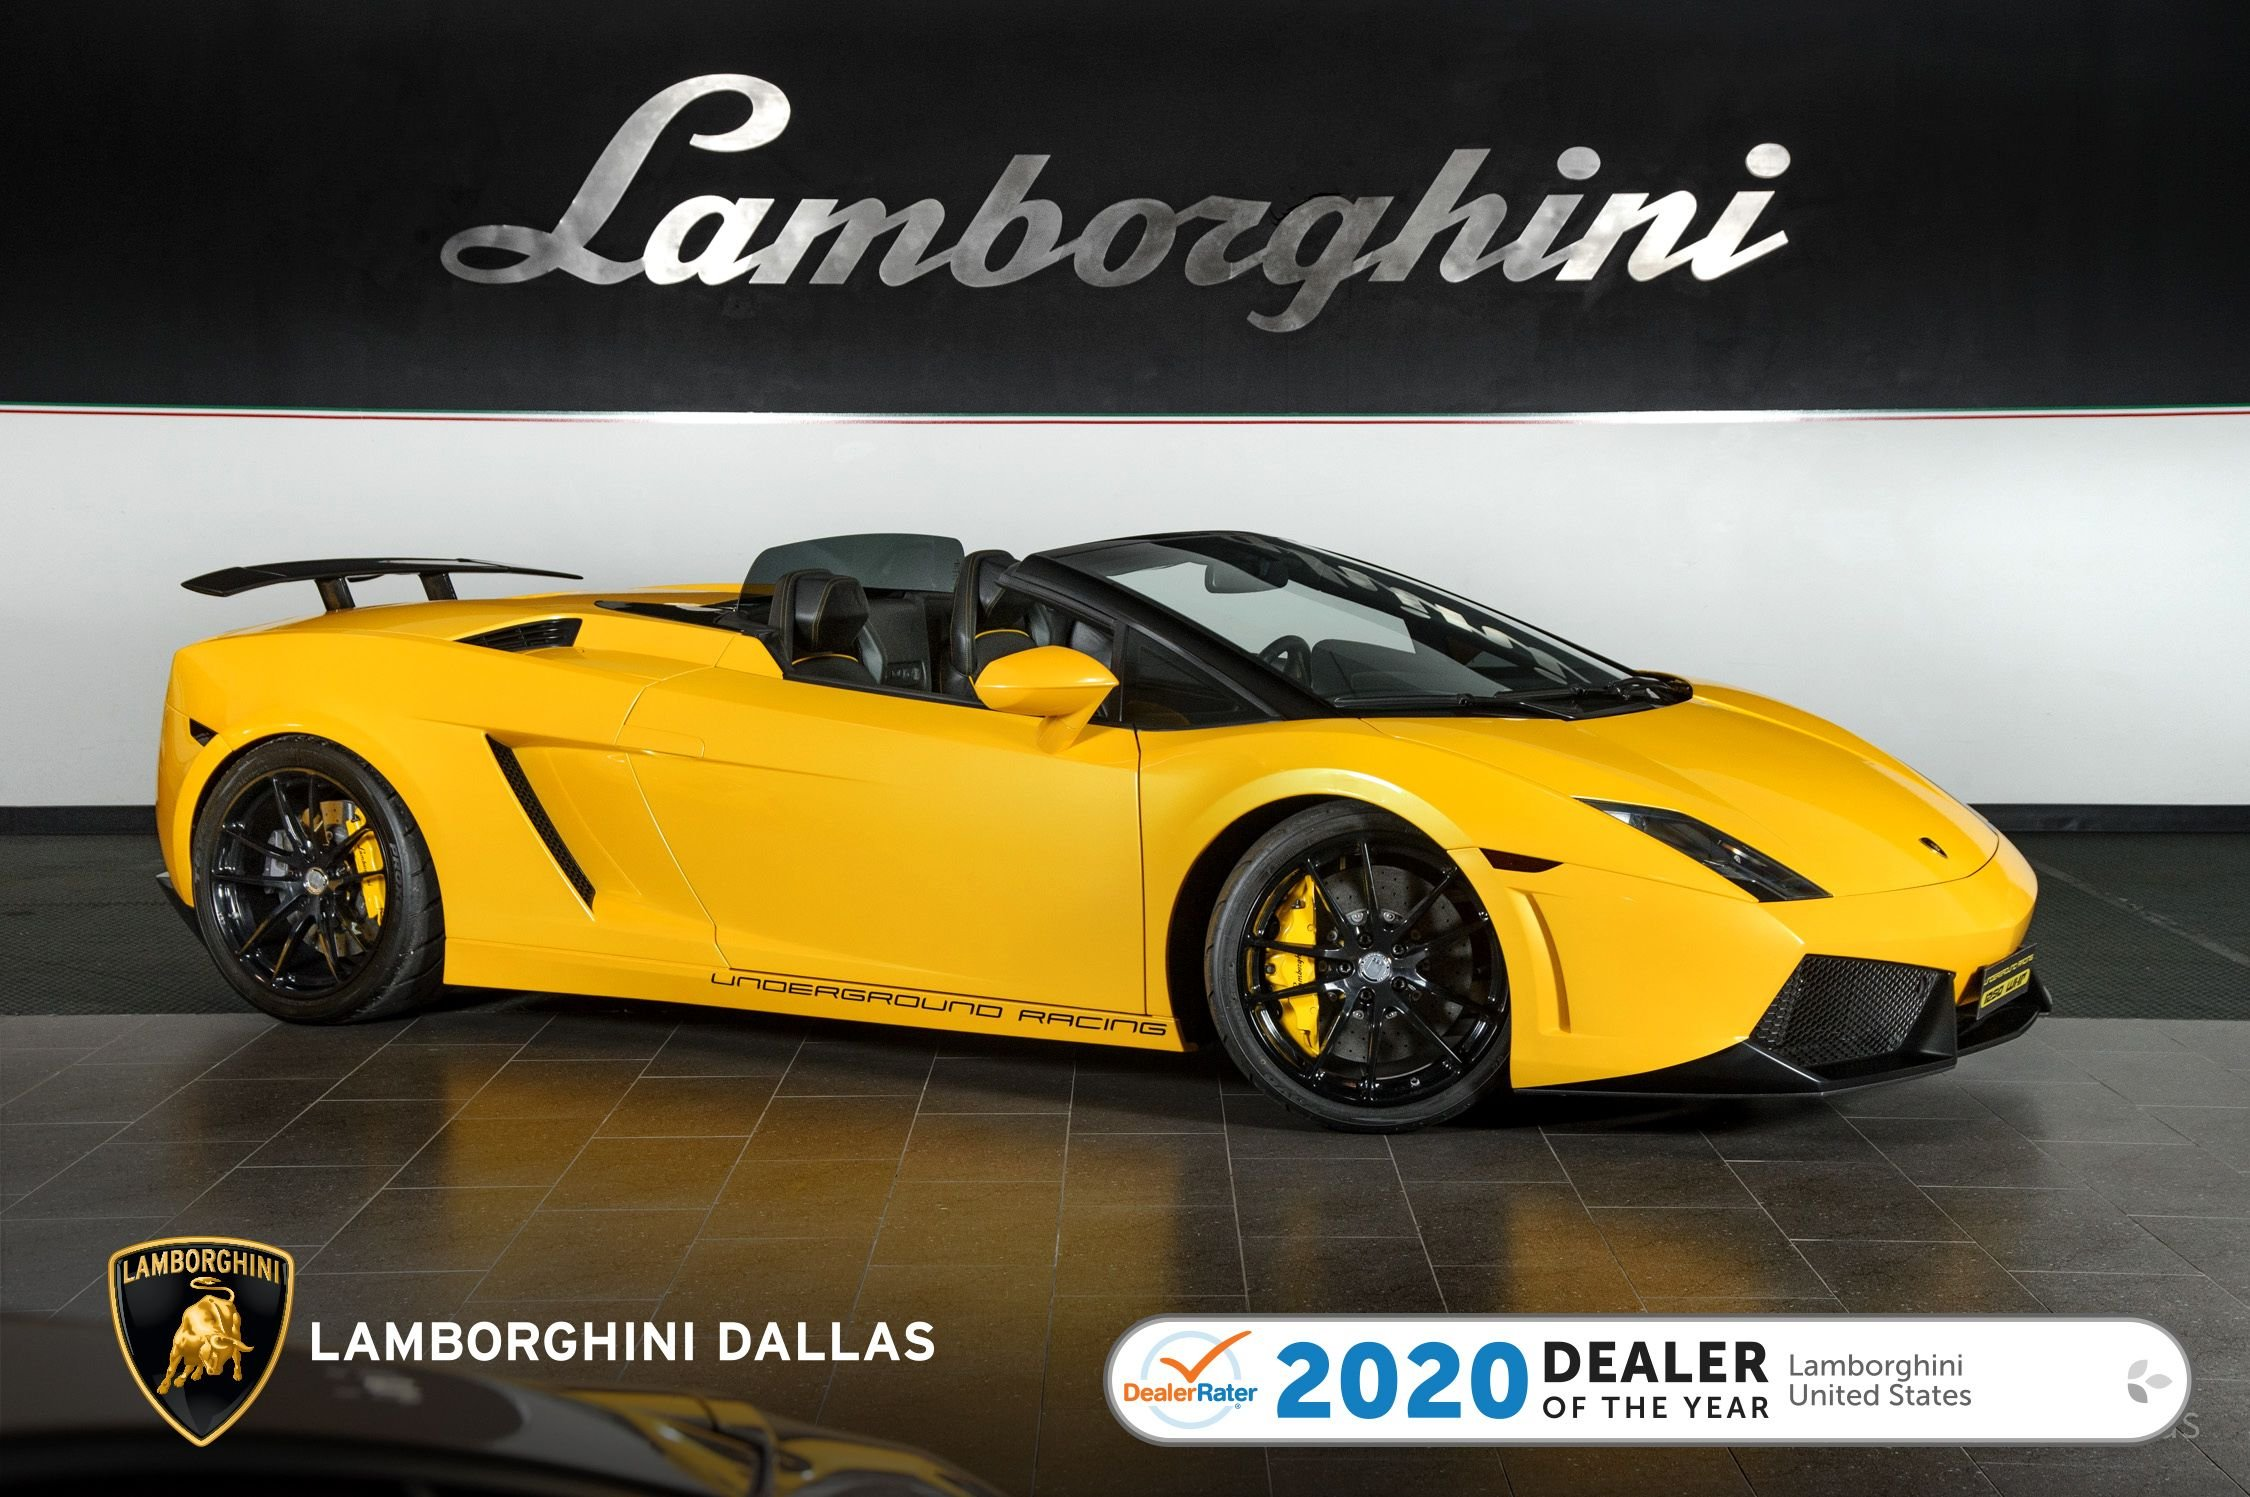 used 2011 Lamborghini Gallardo Spyder car, priced at $174,999